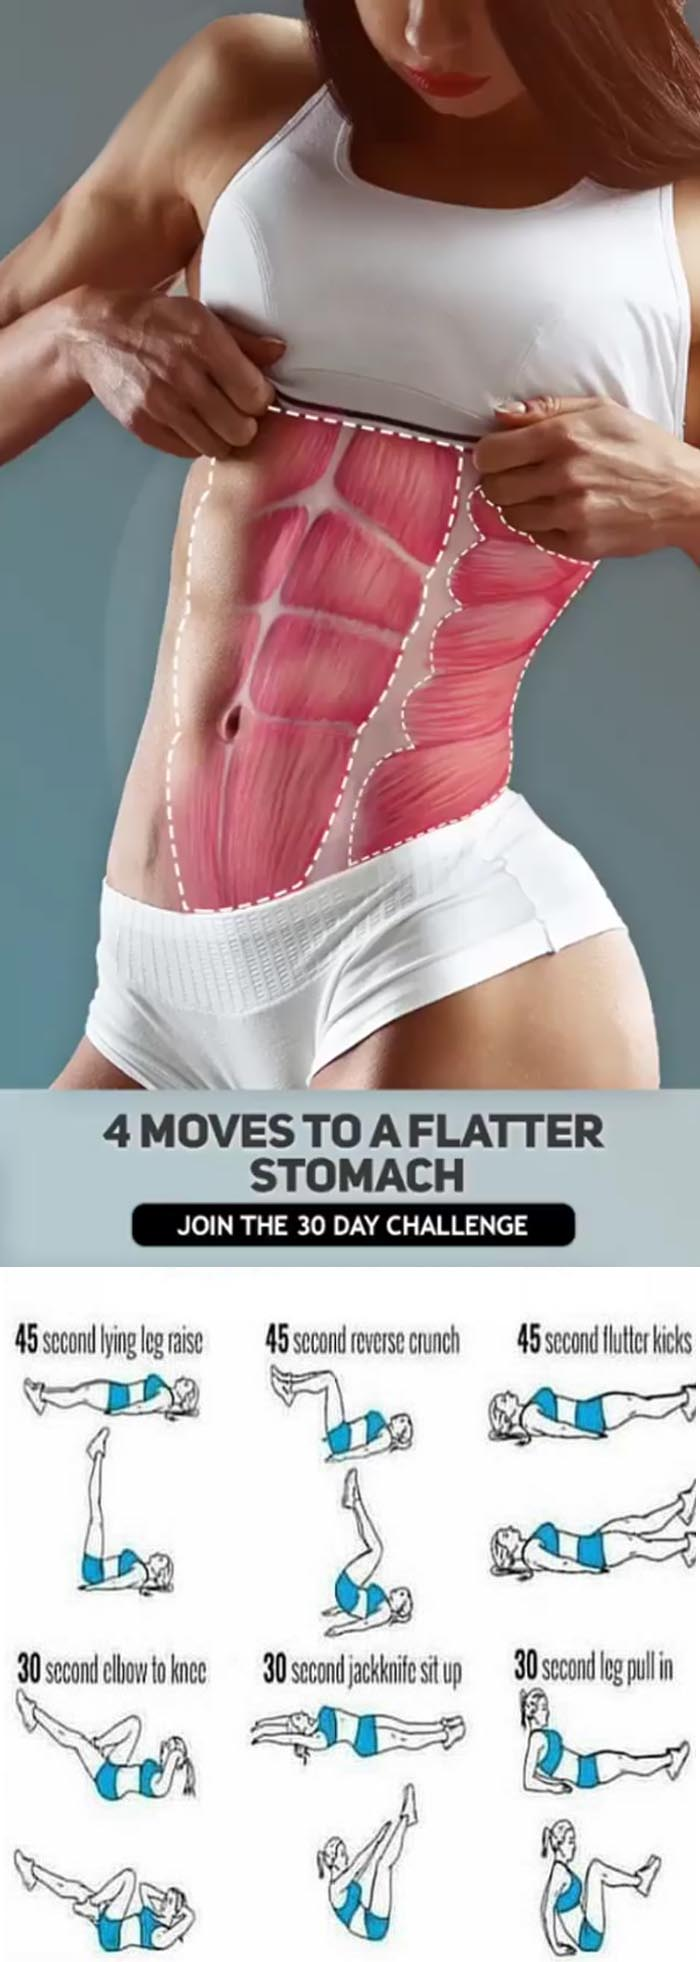 Moves Flatter Stomach